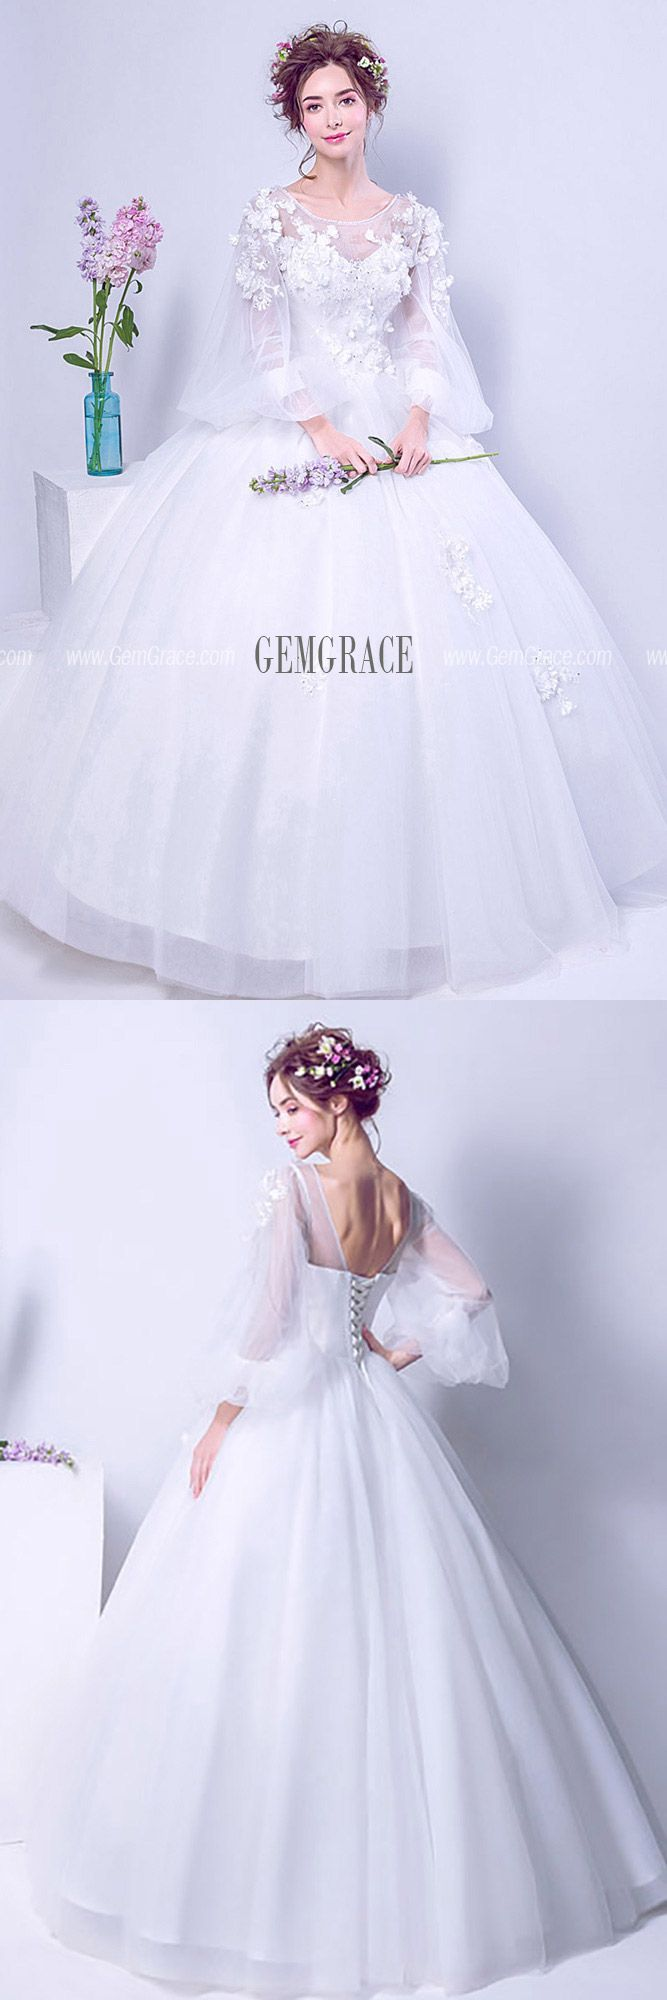 144 89 Puffy Sleeve Long White Floral Bridal Gown For 2019 Winter Wedding Wholesale T69450 Gemgrace Com Bridal Gowns Ball Gown Wedding Dress Bridal [ 2000 x 667 Pixel ]